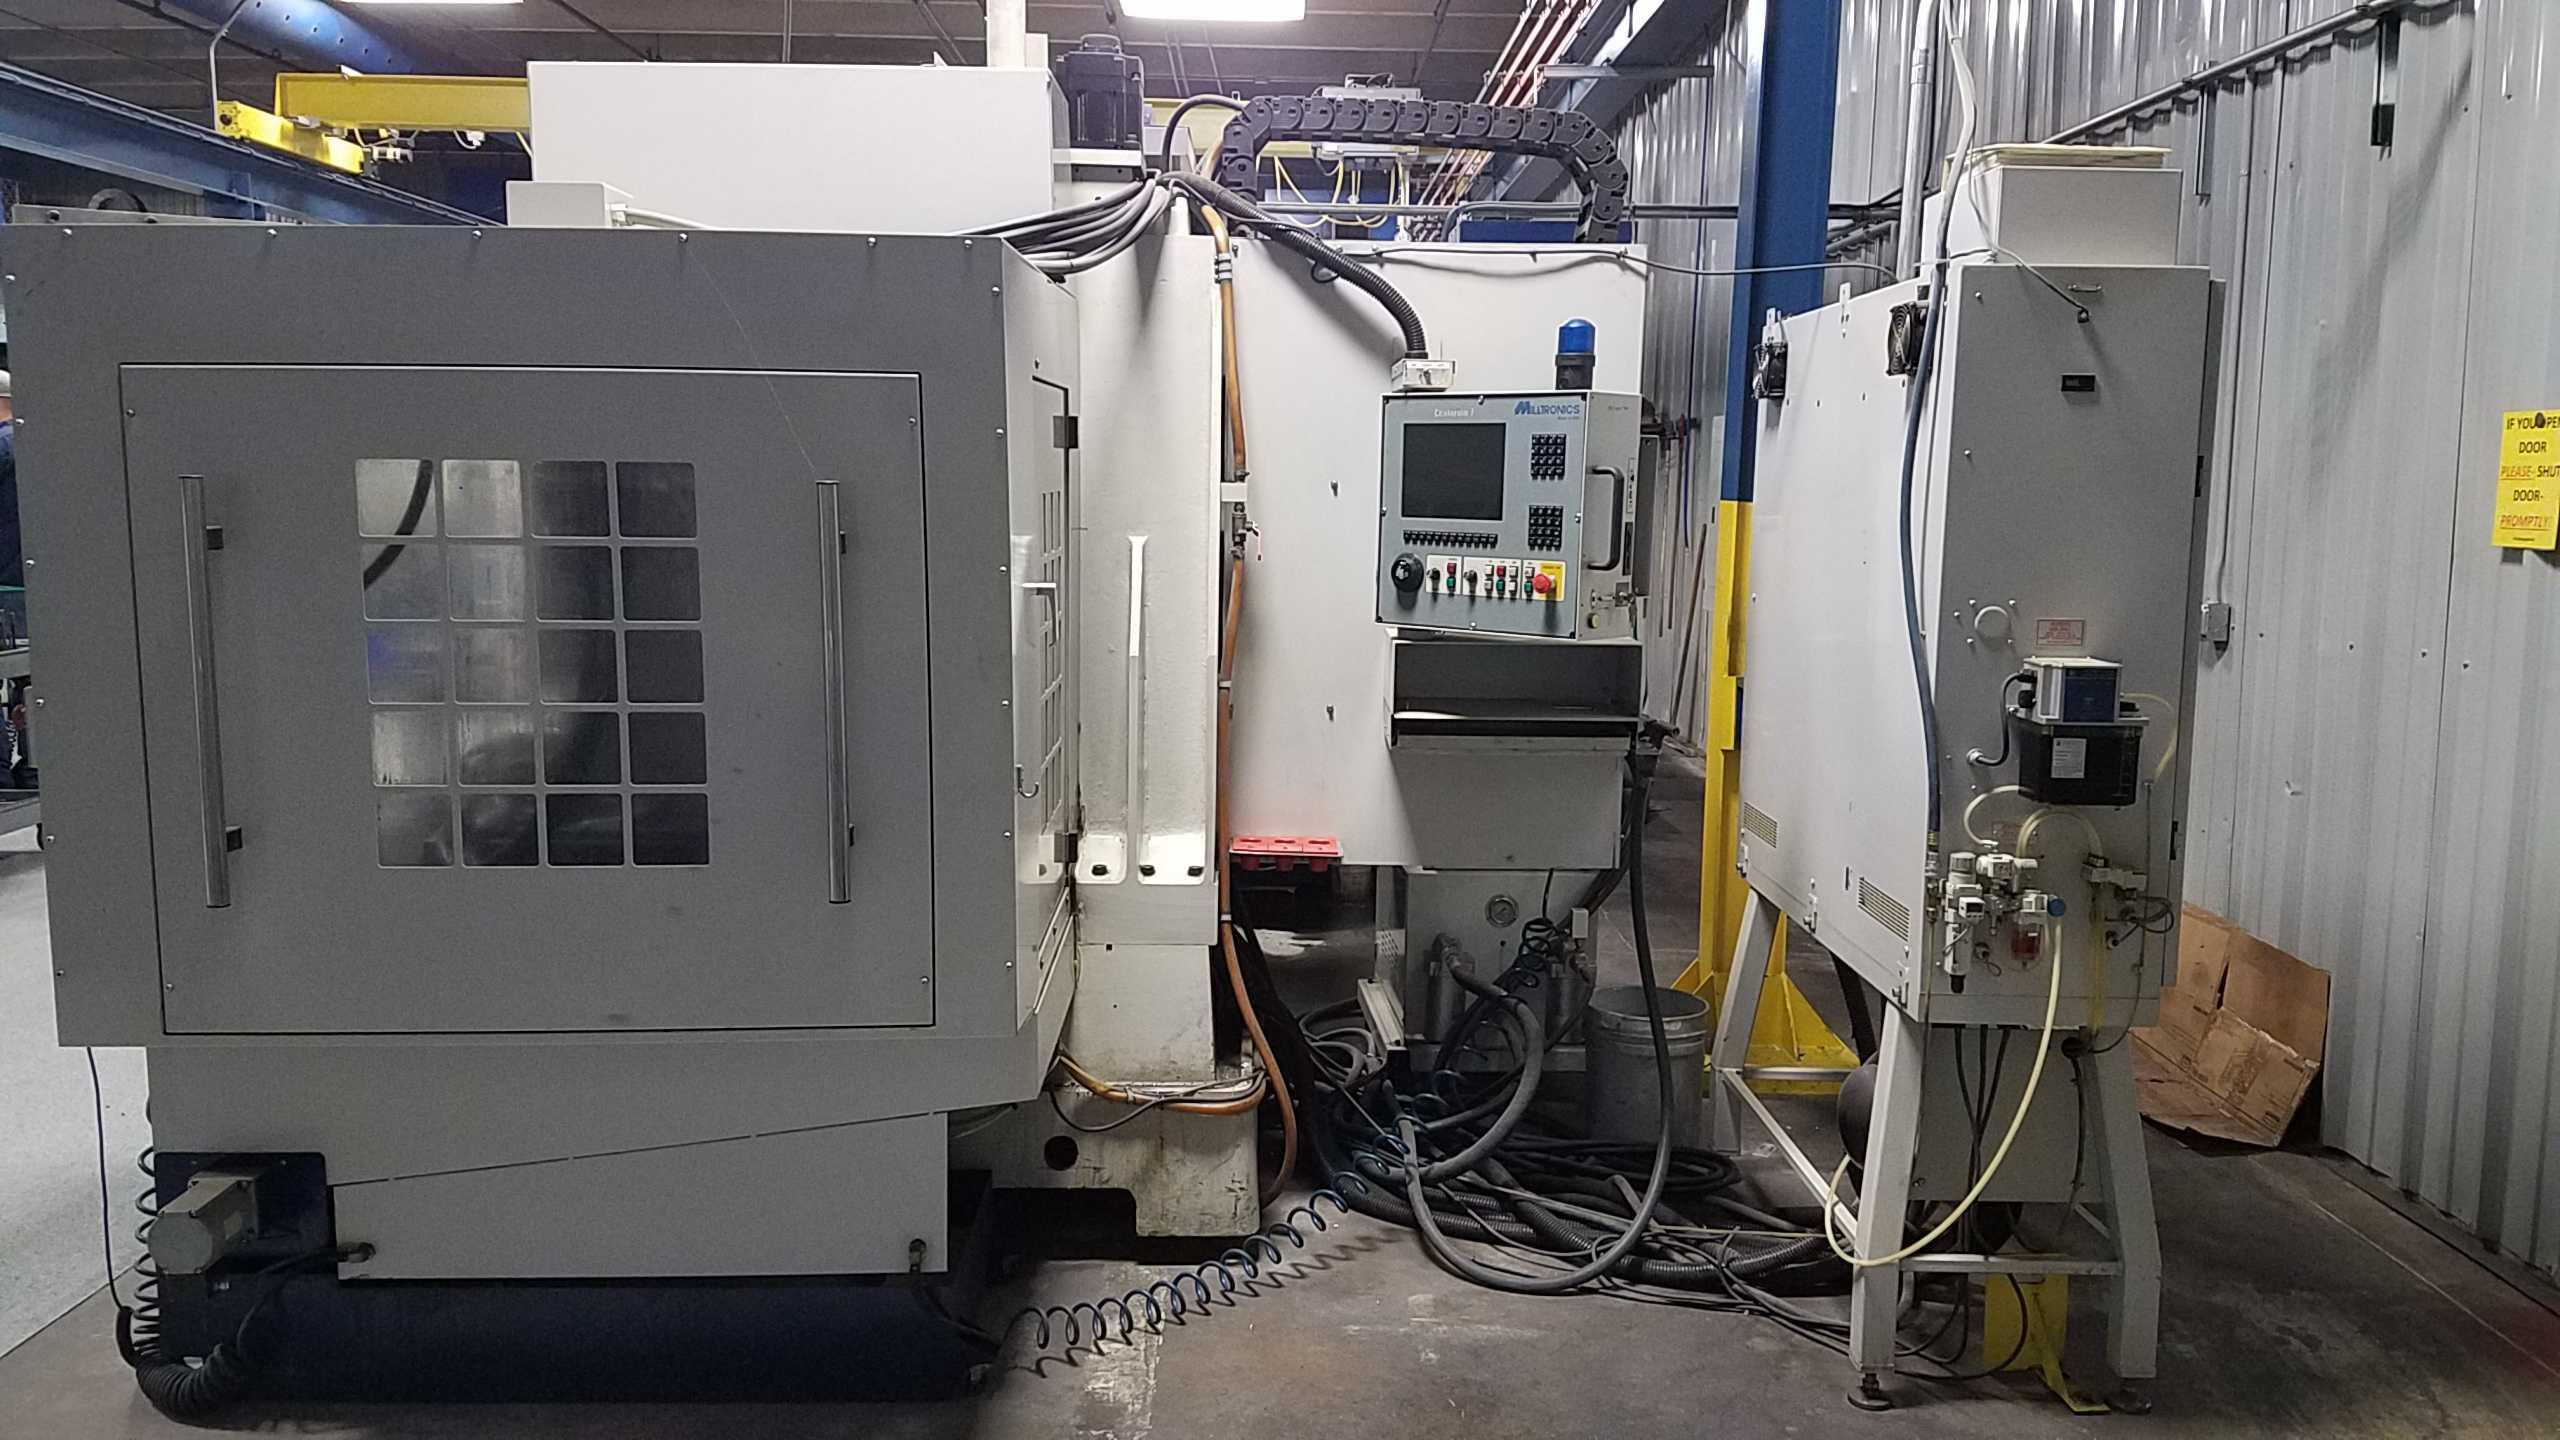 2007 Milltronics HM20 - CNC Horizontal Machining Center